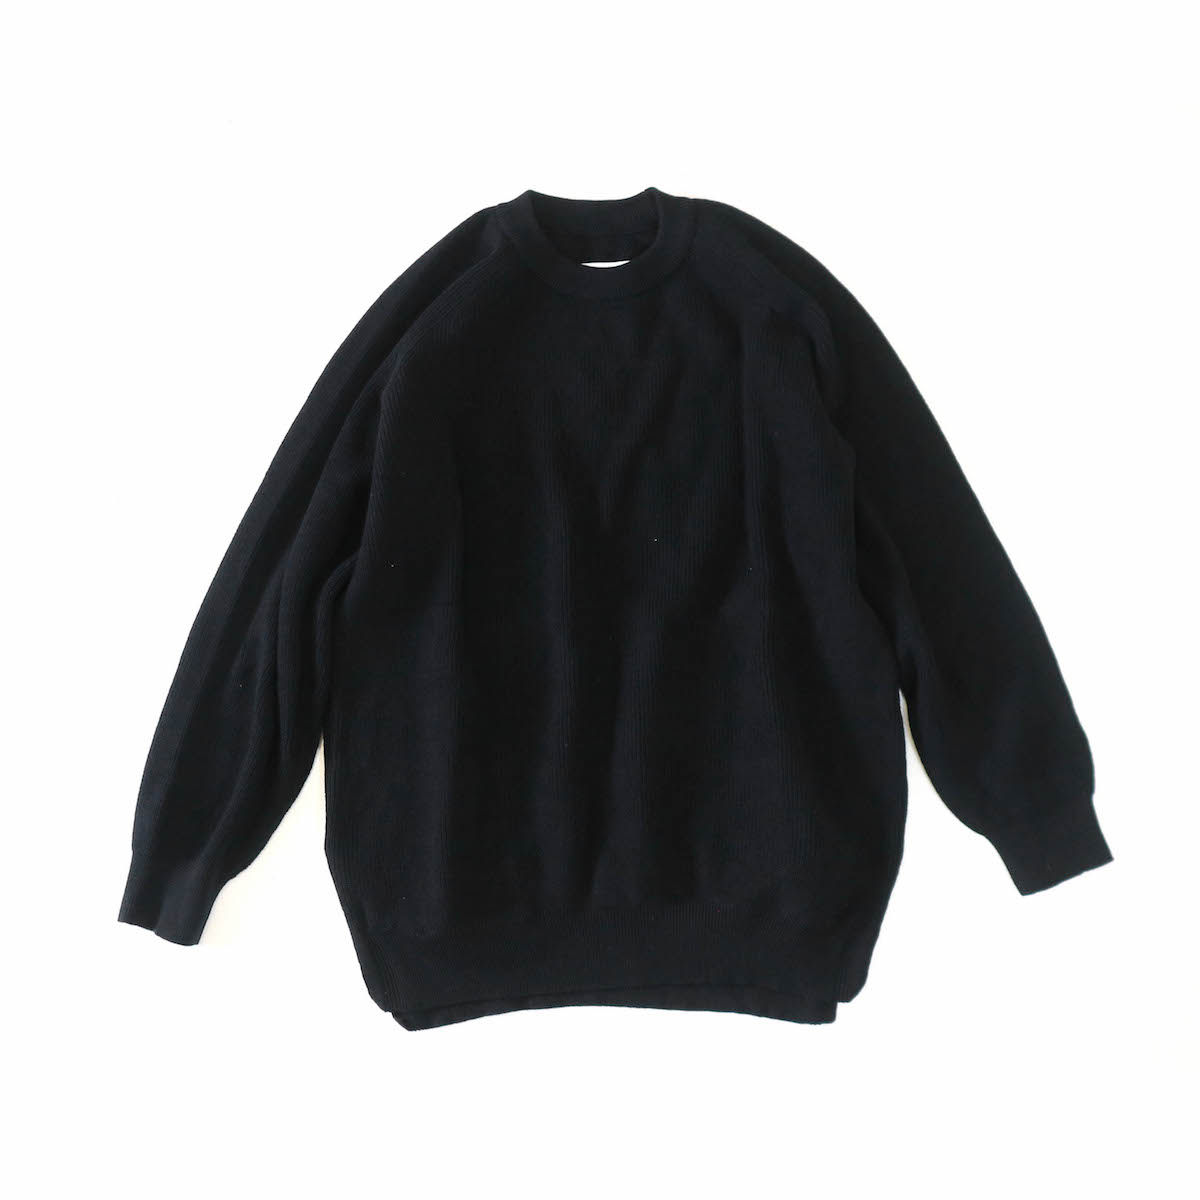 CURLY / ASSEMBLY CREW KNIT -BLACK